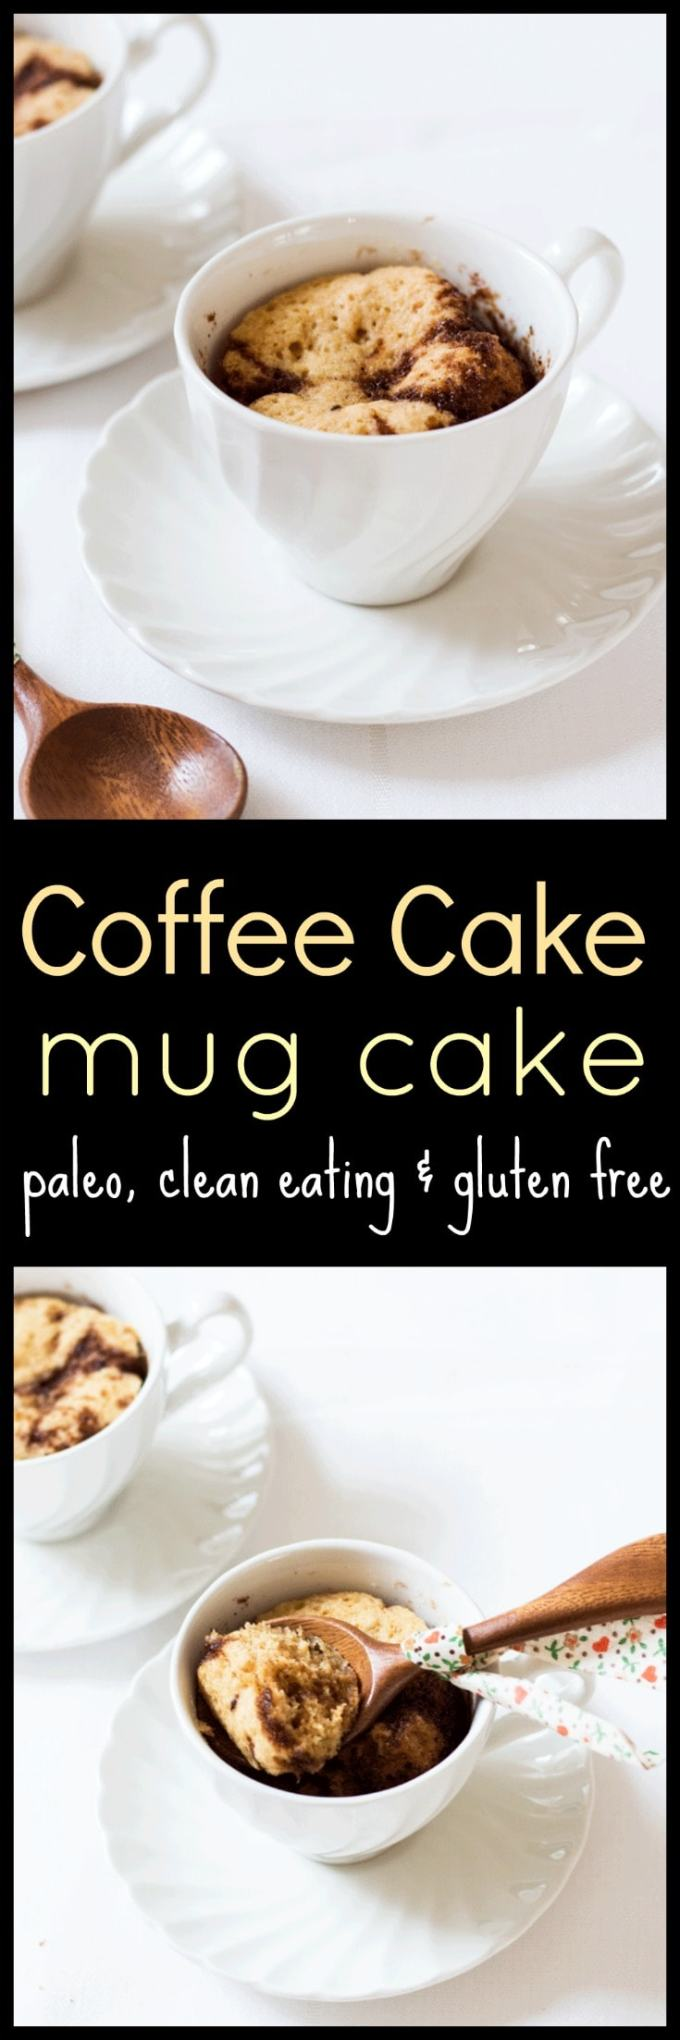 Moist, healthy, delicious and ready in less than five minutes, this Coffee Cake Mug Cake is the perfect dessert to serve up when that sweet craving hits